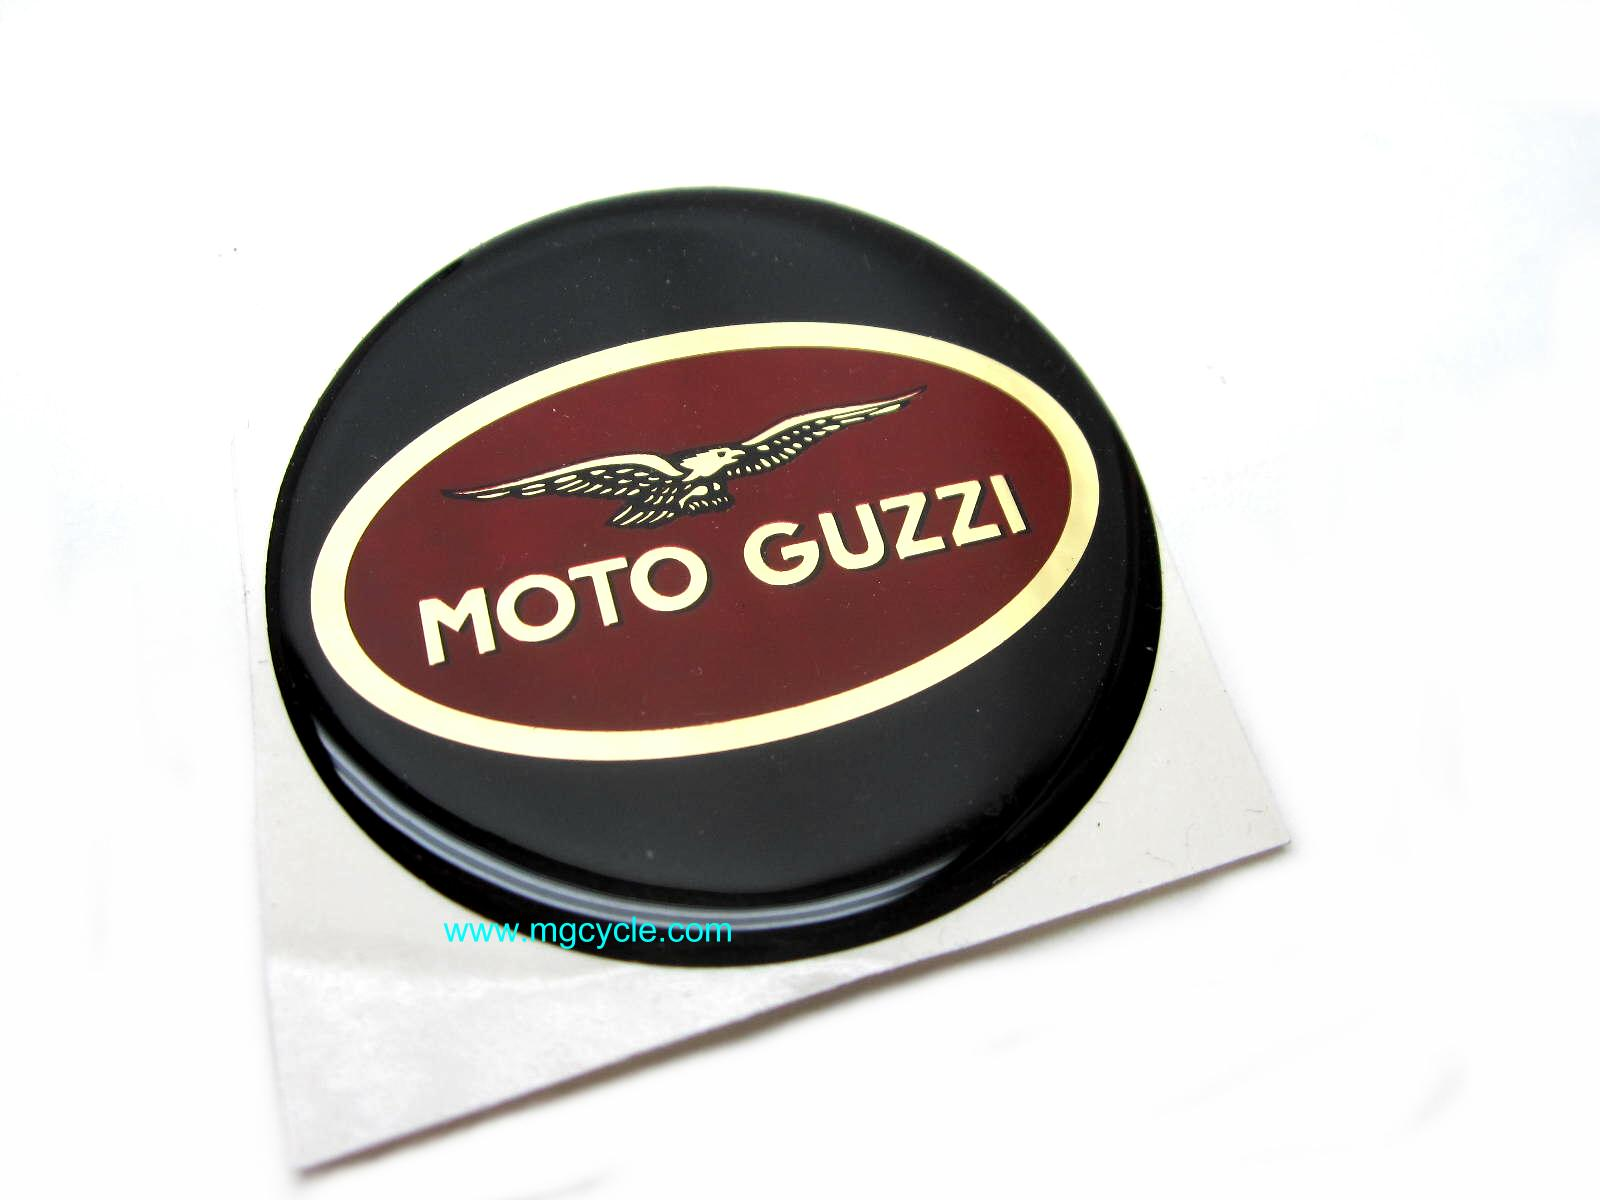 Hepco Becker 60mm Moto Guzzi emblem, fits Junior-2 bags